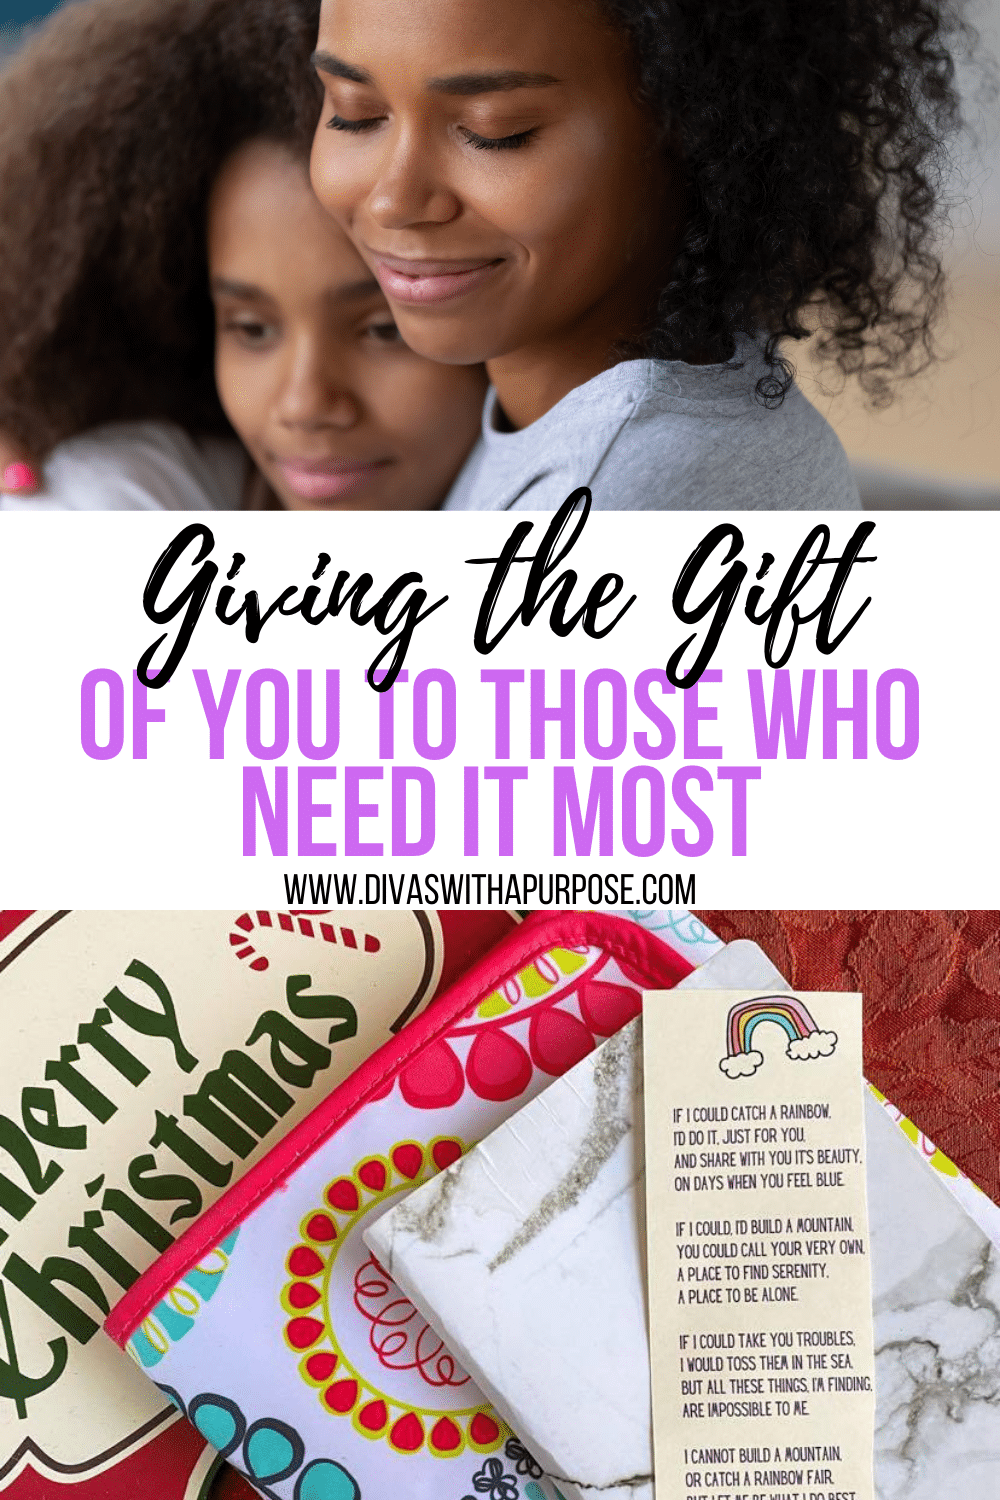 Are you giving the gift of you to those who need it most this holiday season? Here are simple ways to make a difference. (sponsored) #FindYour3 #preventACEs